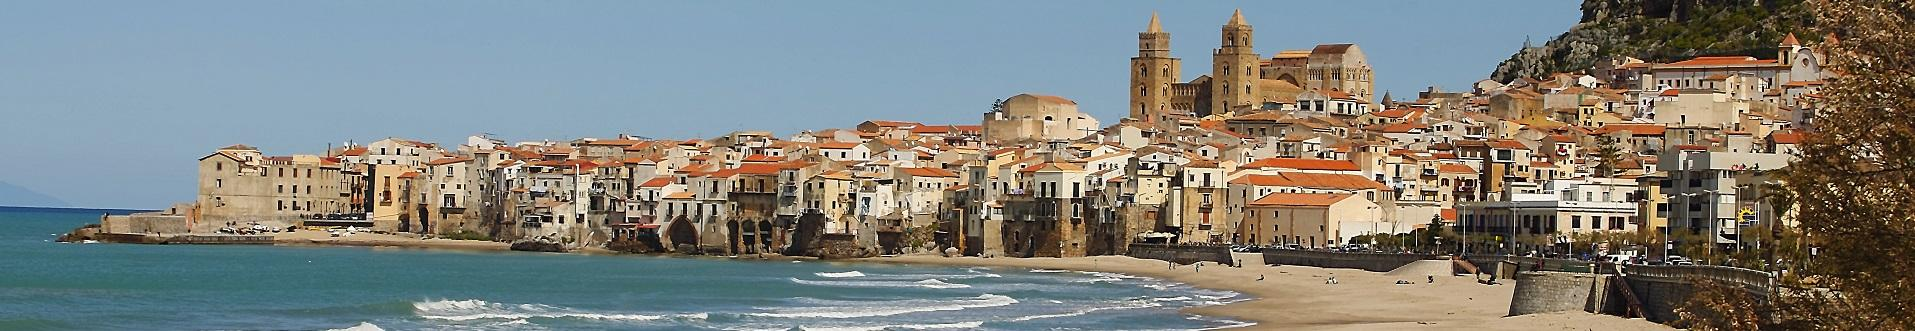 Holidays in Cefalù: Villas and Apartments for Rent